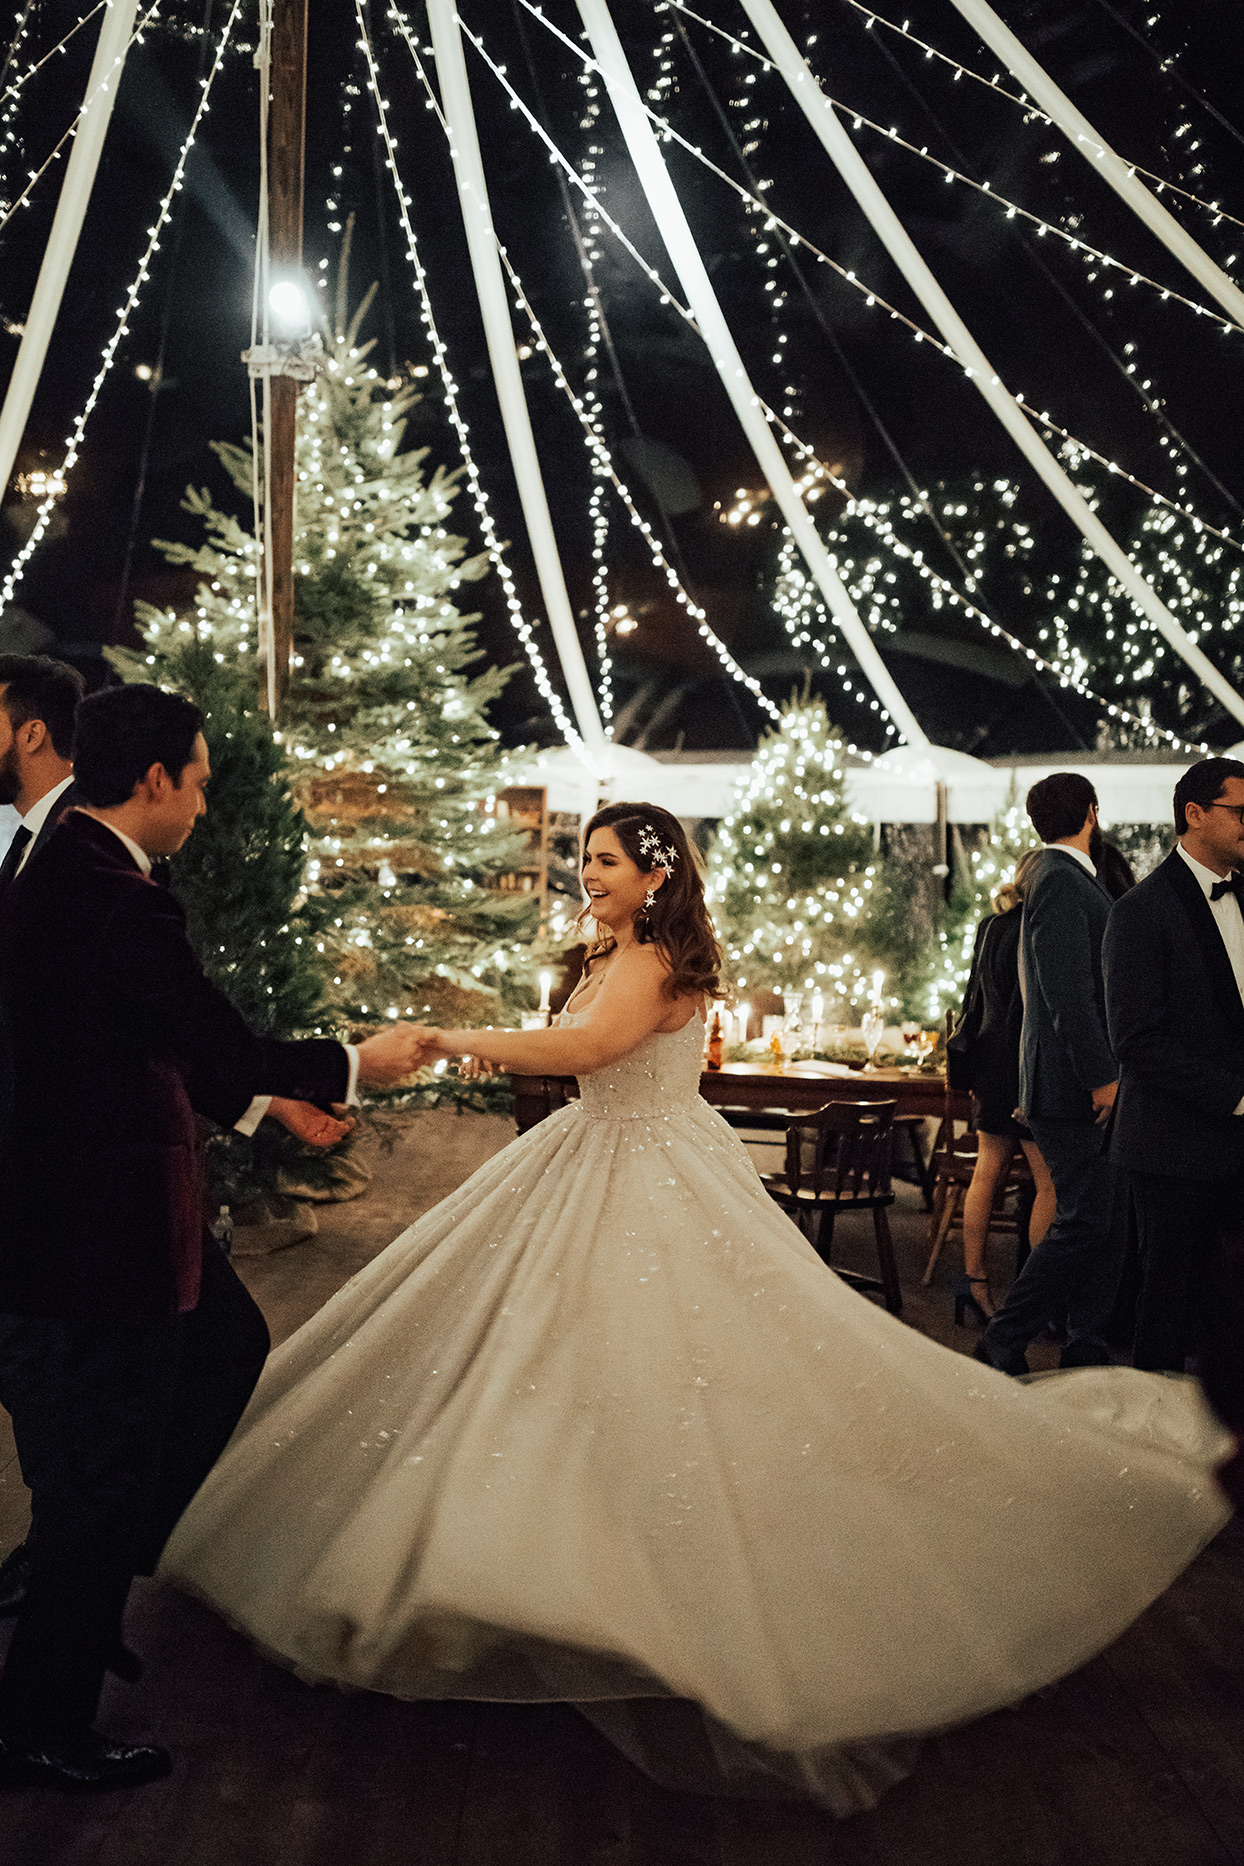 A Fabulous First Dance